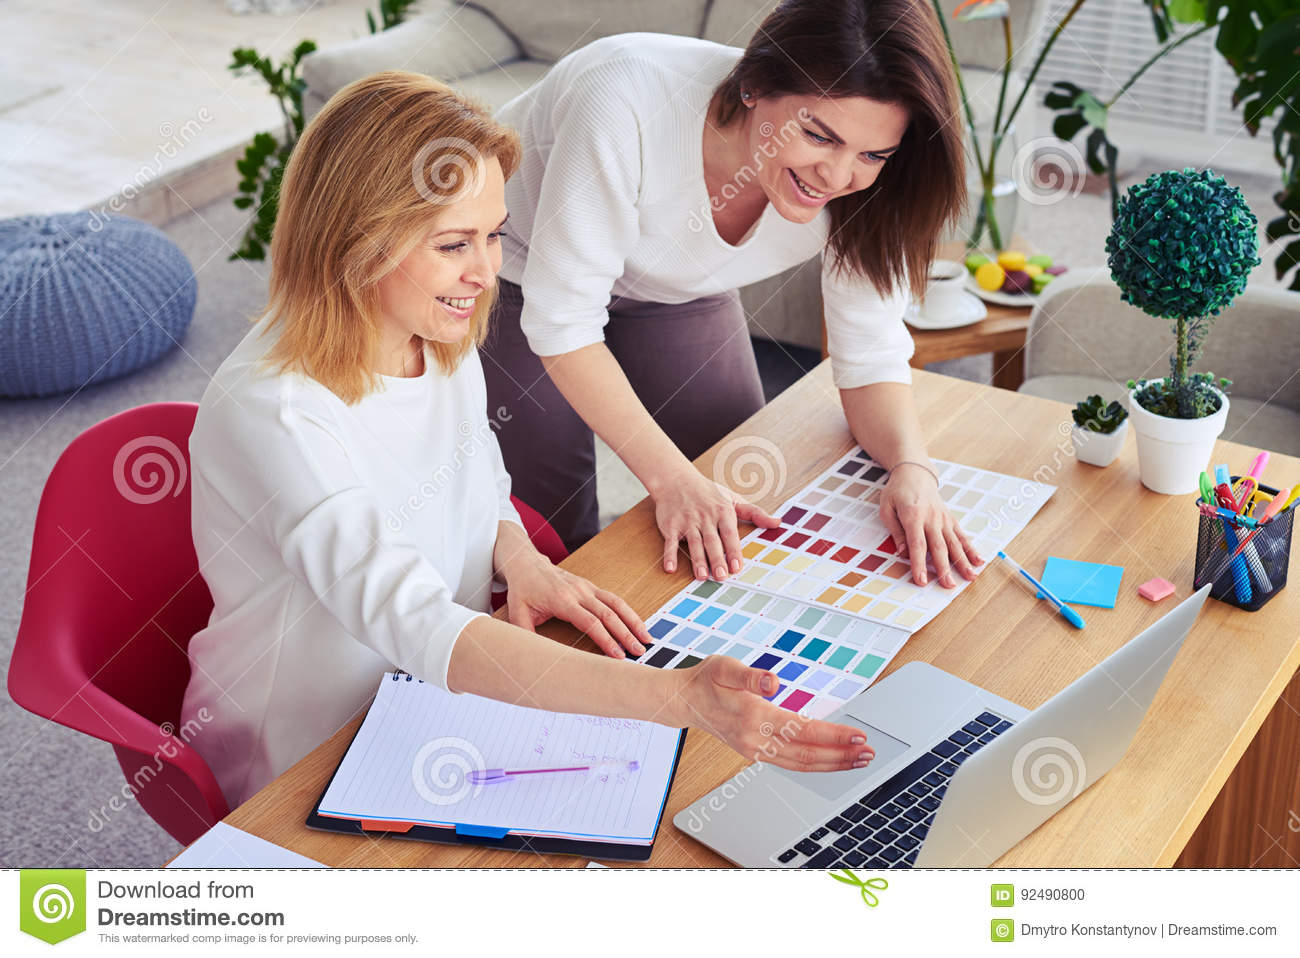 Smiling females working with catalog of color palette and laptop